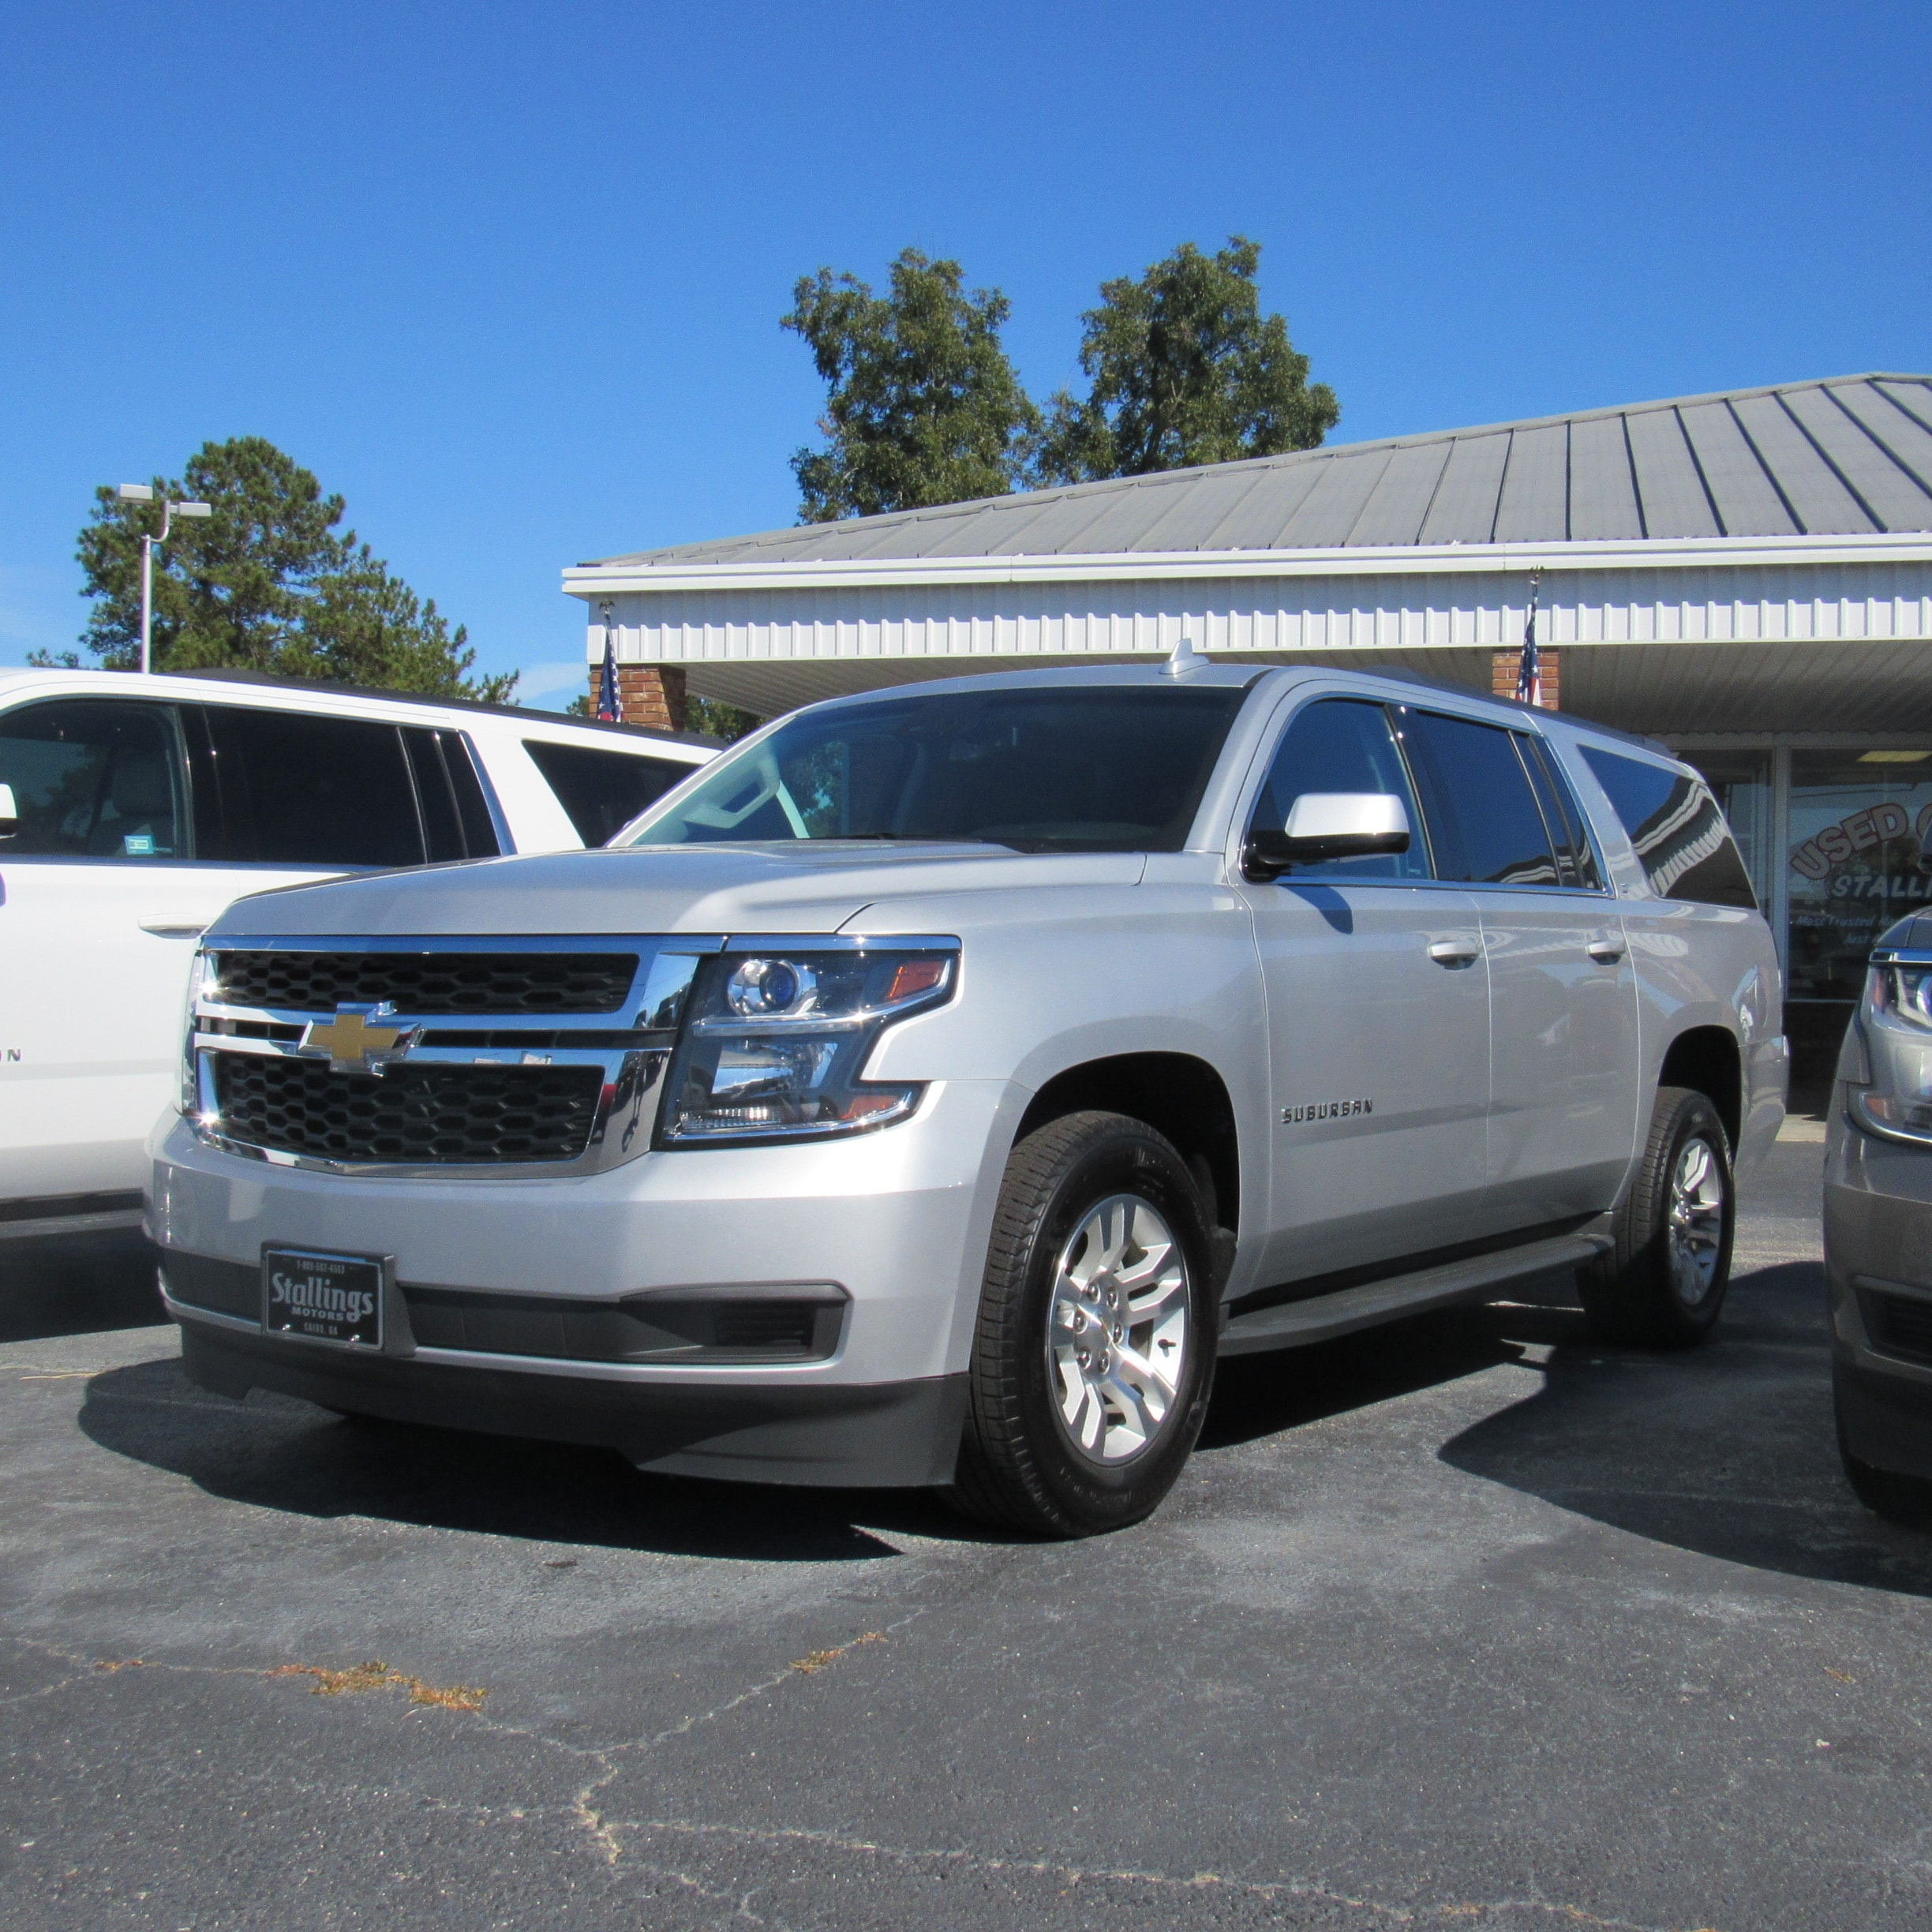 ga in us favourite carsporty your choose chevrolet fantastic d dealers car